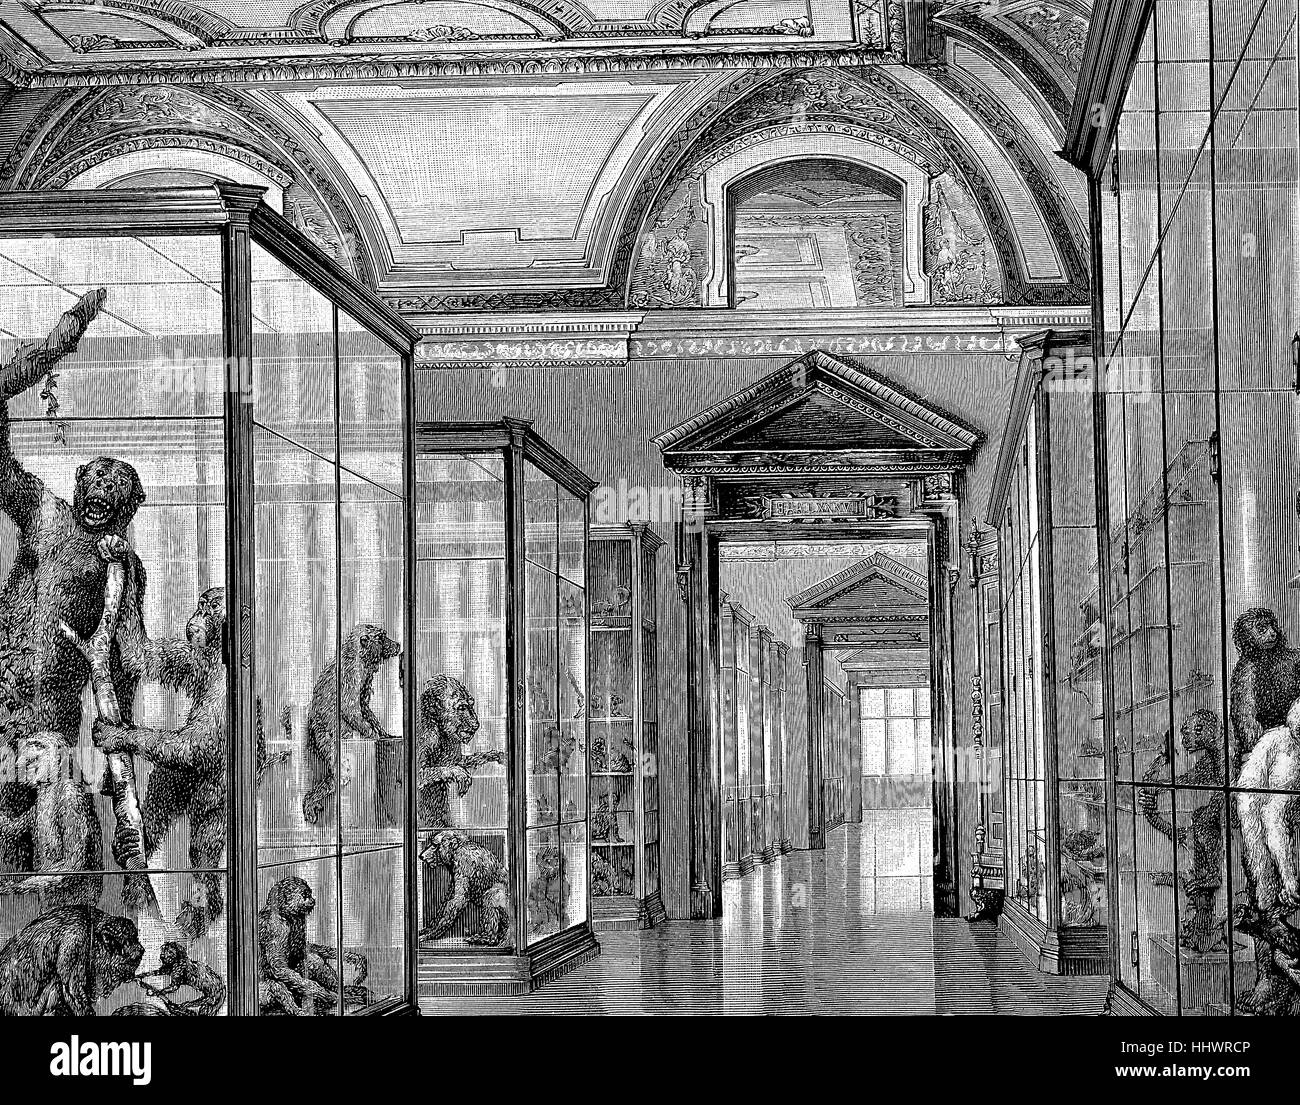 The Affensaal, room of the monkeys, in the Natural History Museum in Vienna, Austria, historical image or illustration, - Stock Image